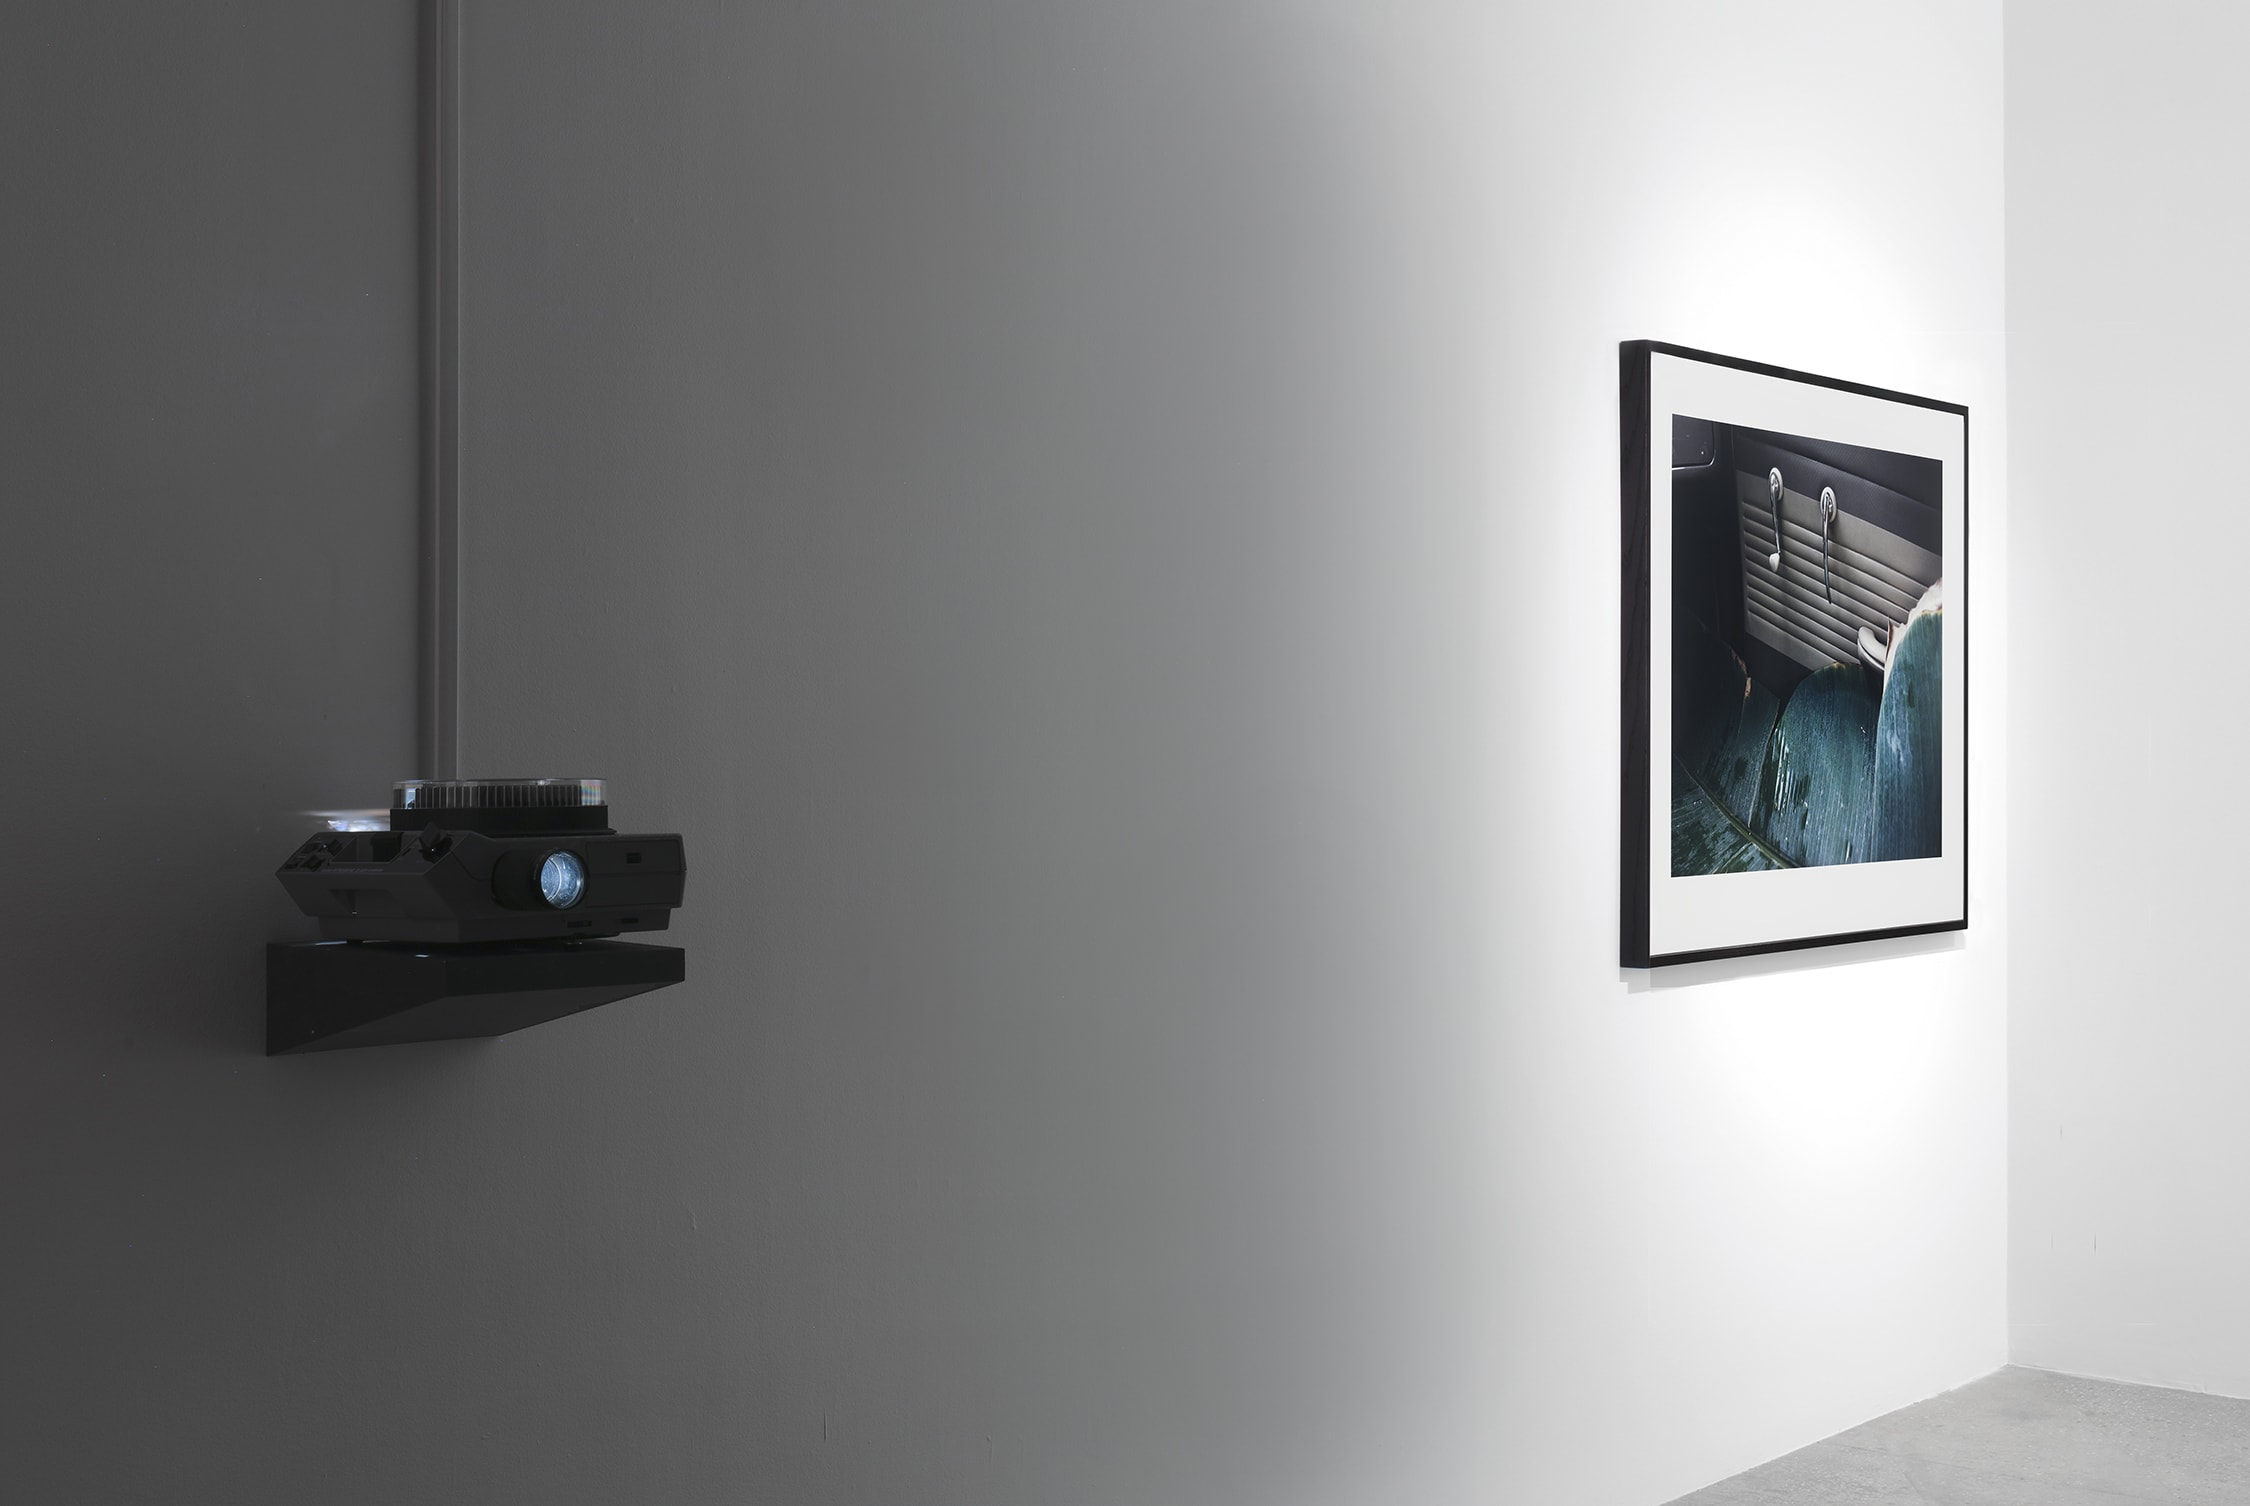 view of a projector and a photograph by Lothar Baumgarten